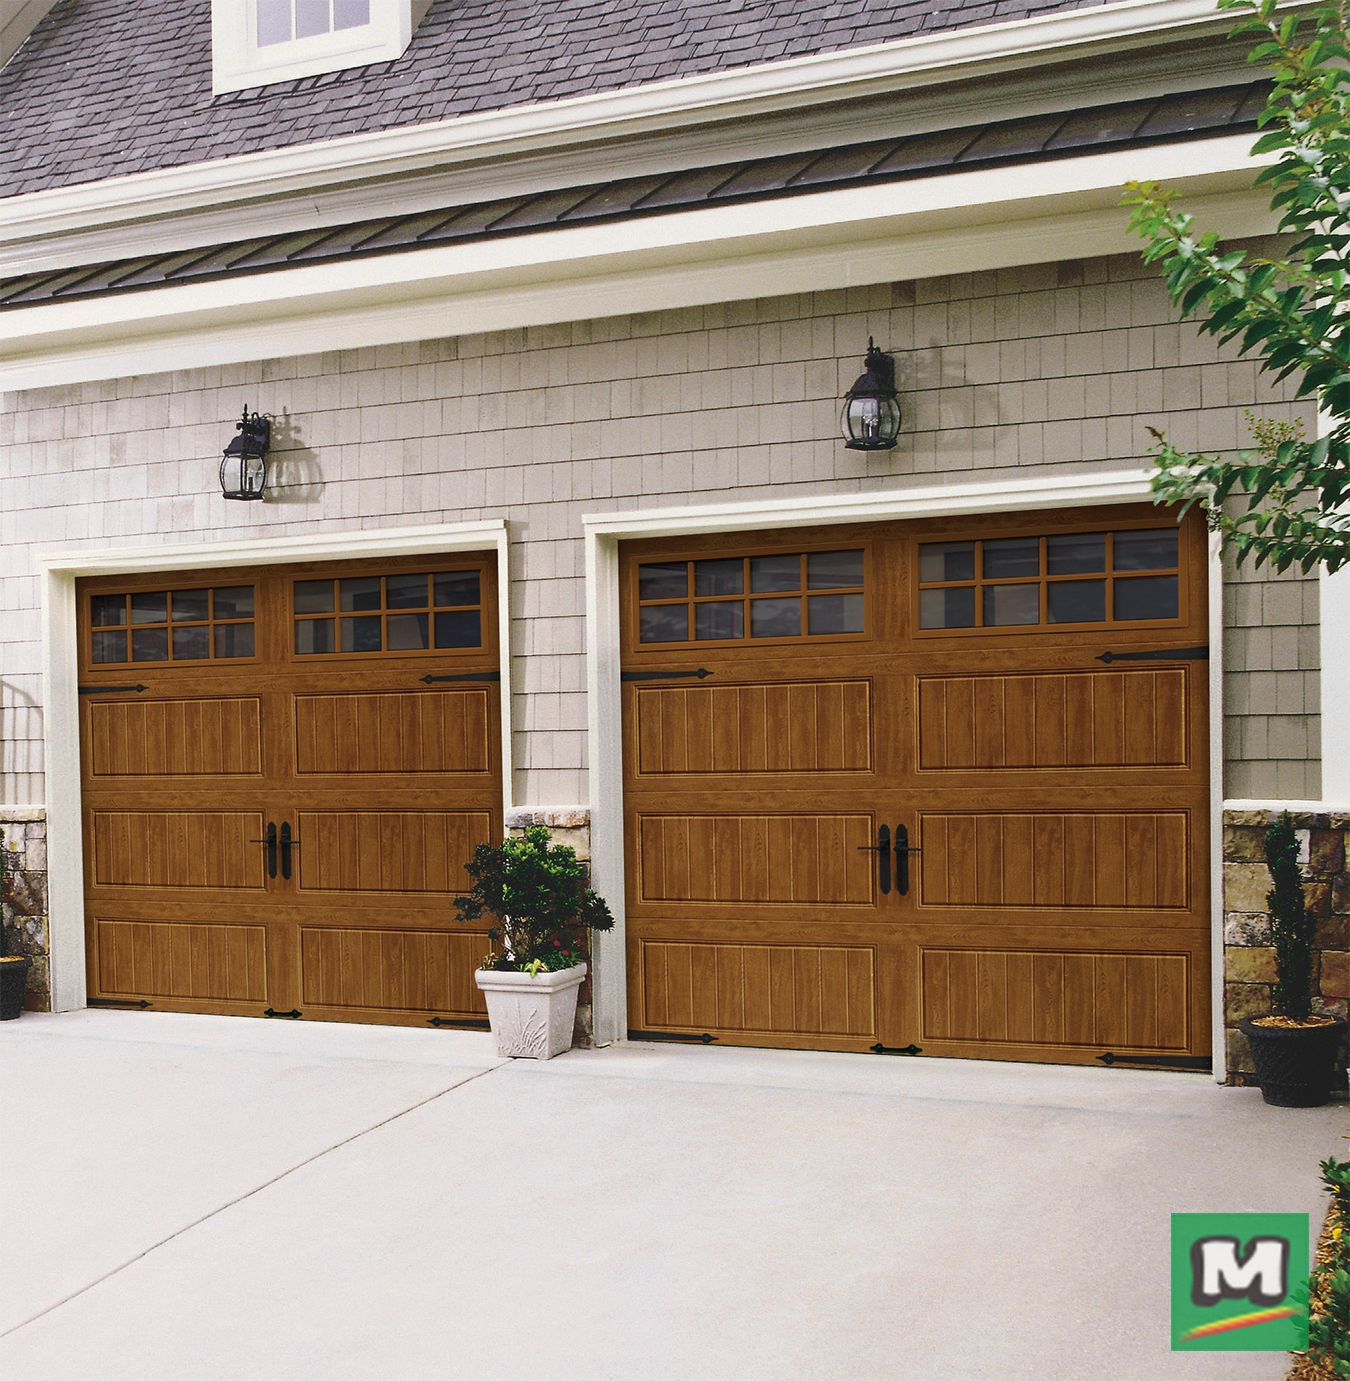 These Garage Doors From Ideal Door® Offer Superior Insulation With A 3  Layer Design. They Are Constructed With Insulation Between Two Steel Skins  To Provide ...